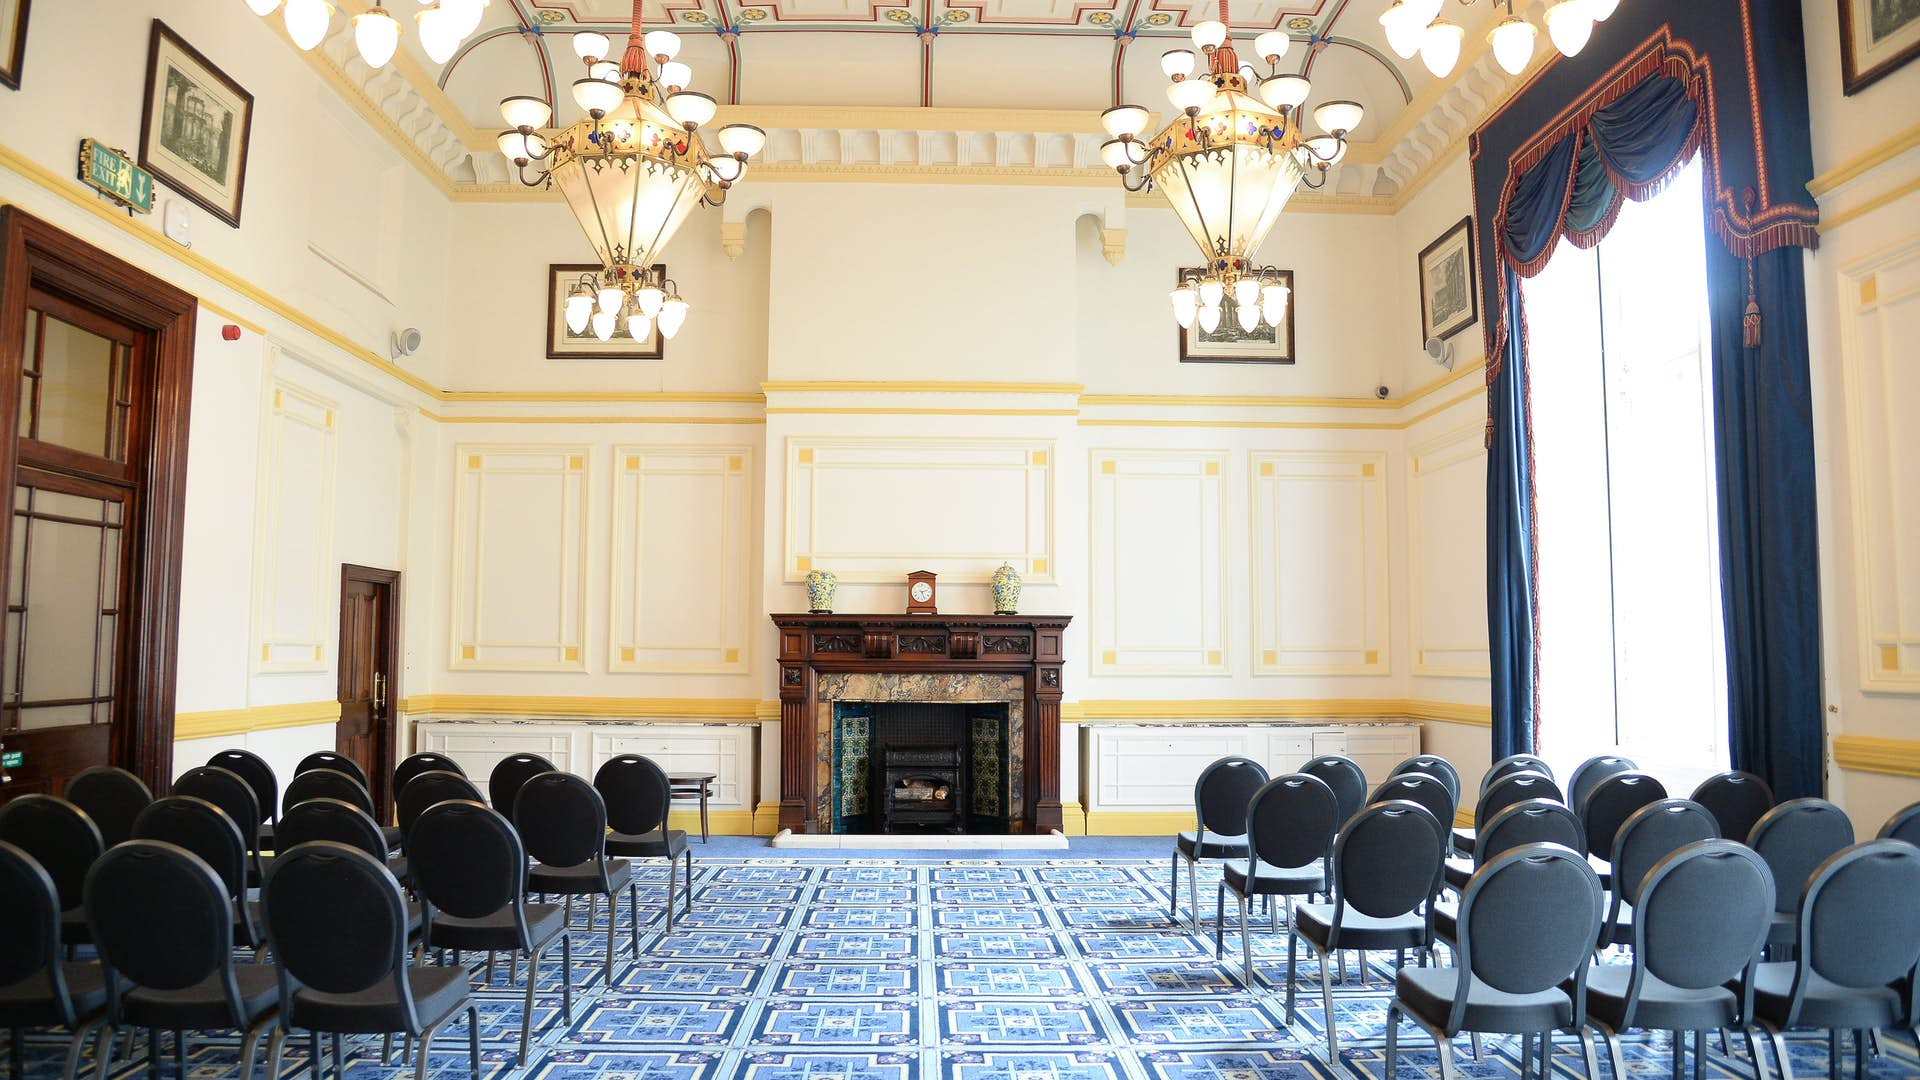 The Meston Suite Business The Royal Horseguards Hotel